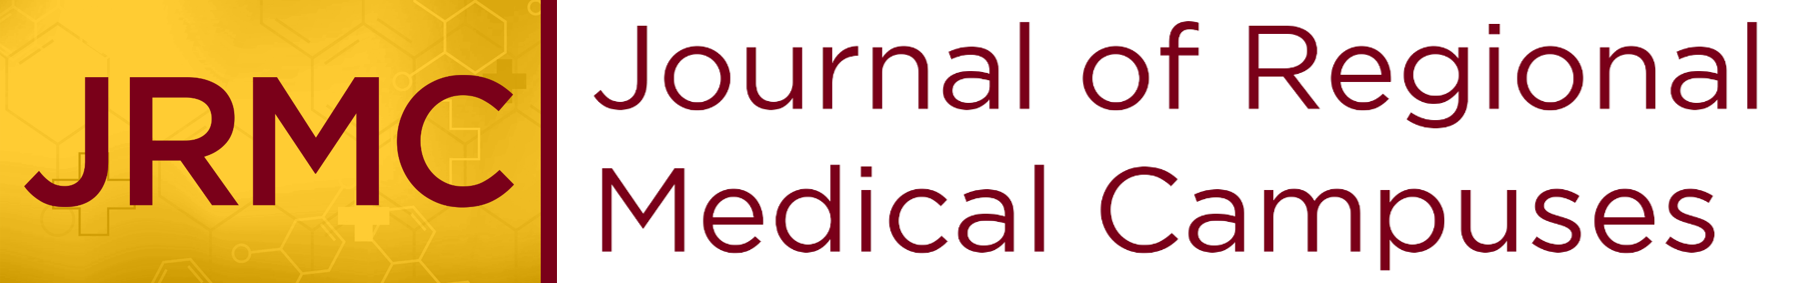 JRMC: Journal of Regional Medical Campuses